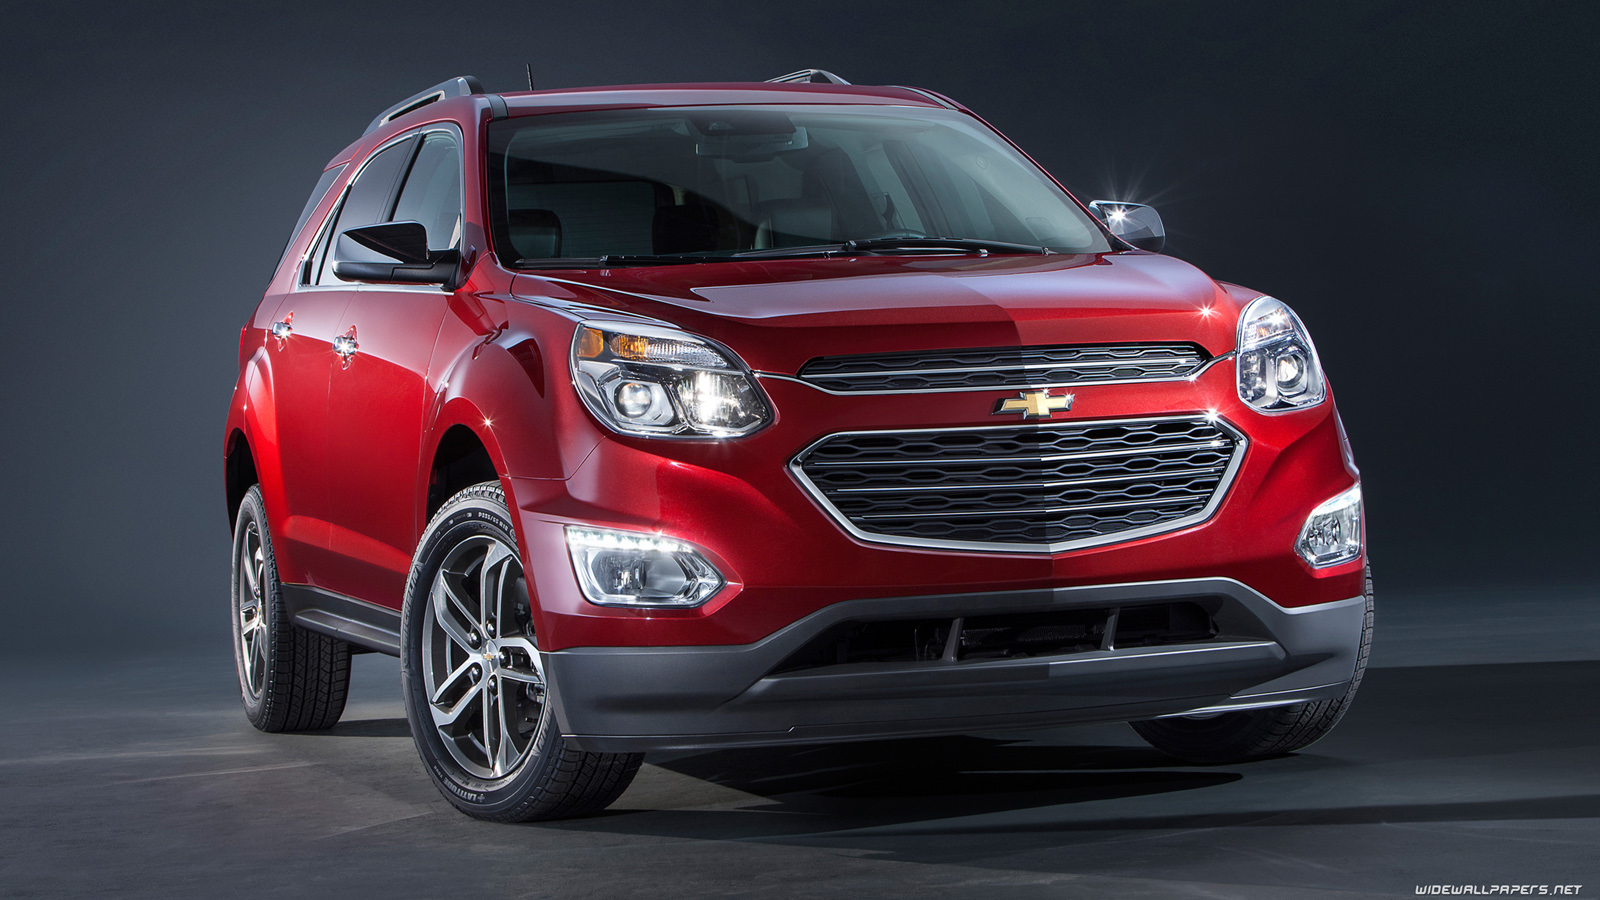 chevrolet equinox cars desktop wallpapers hd and wide wallpapers. Black Bedroom Furniture Sets. Home Design Ideas